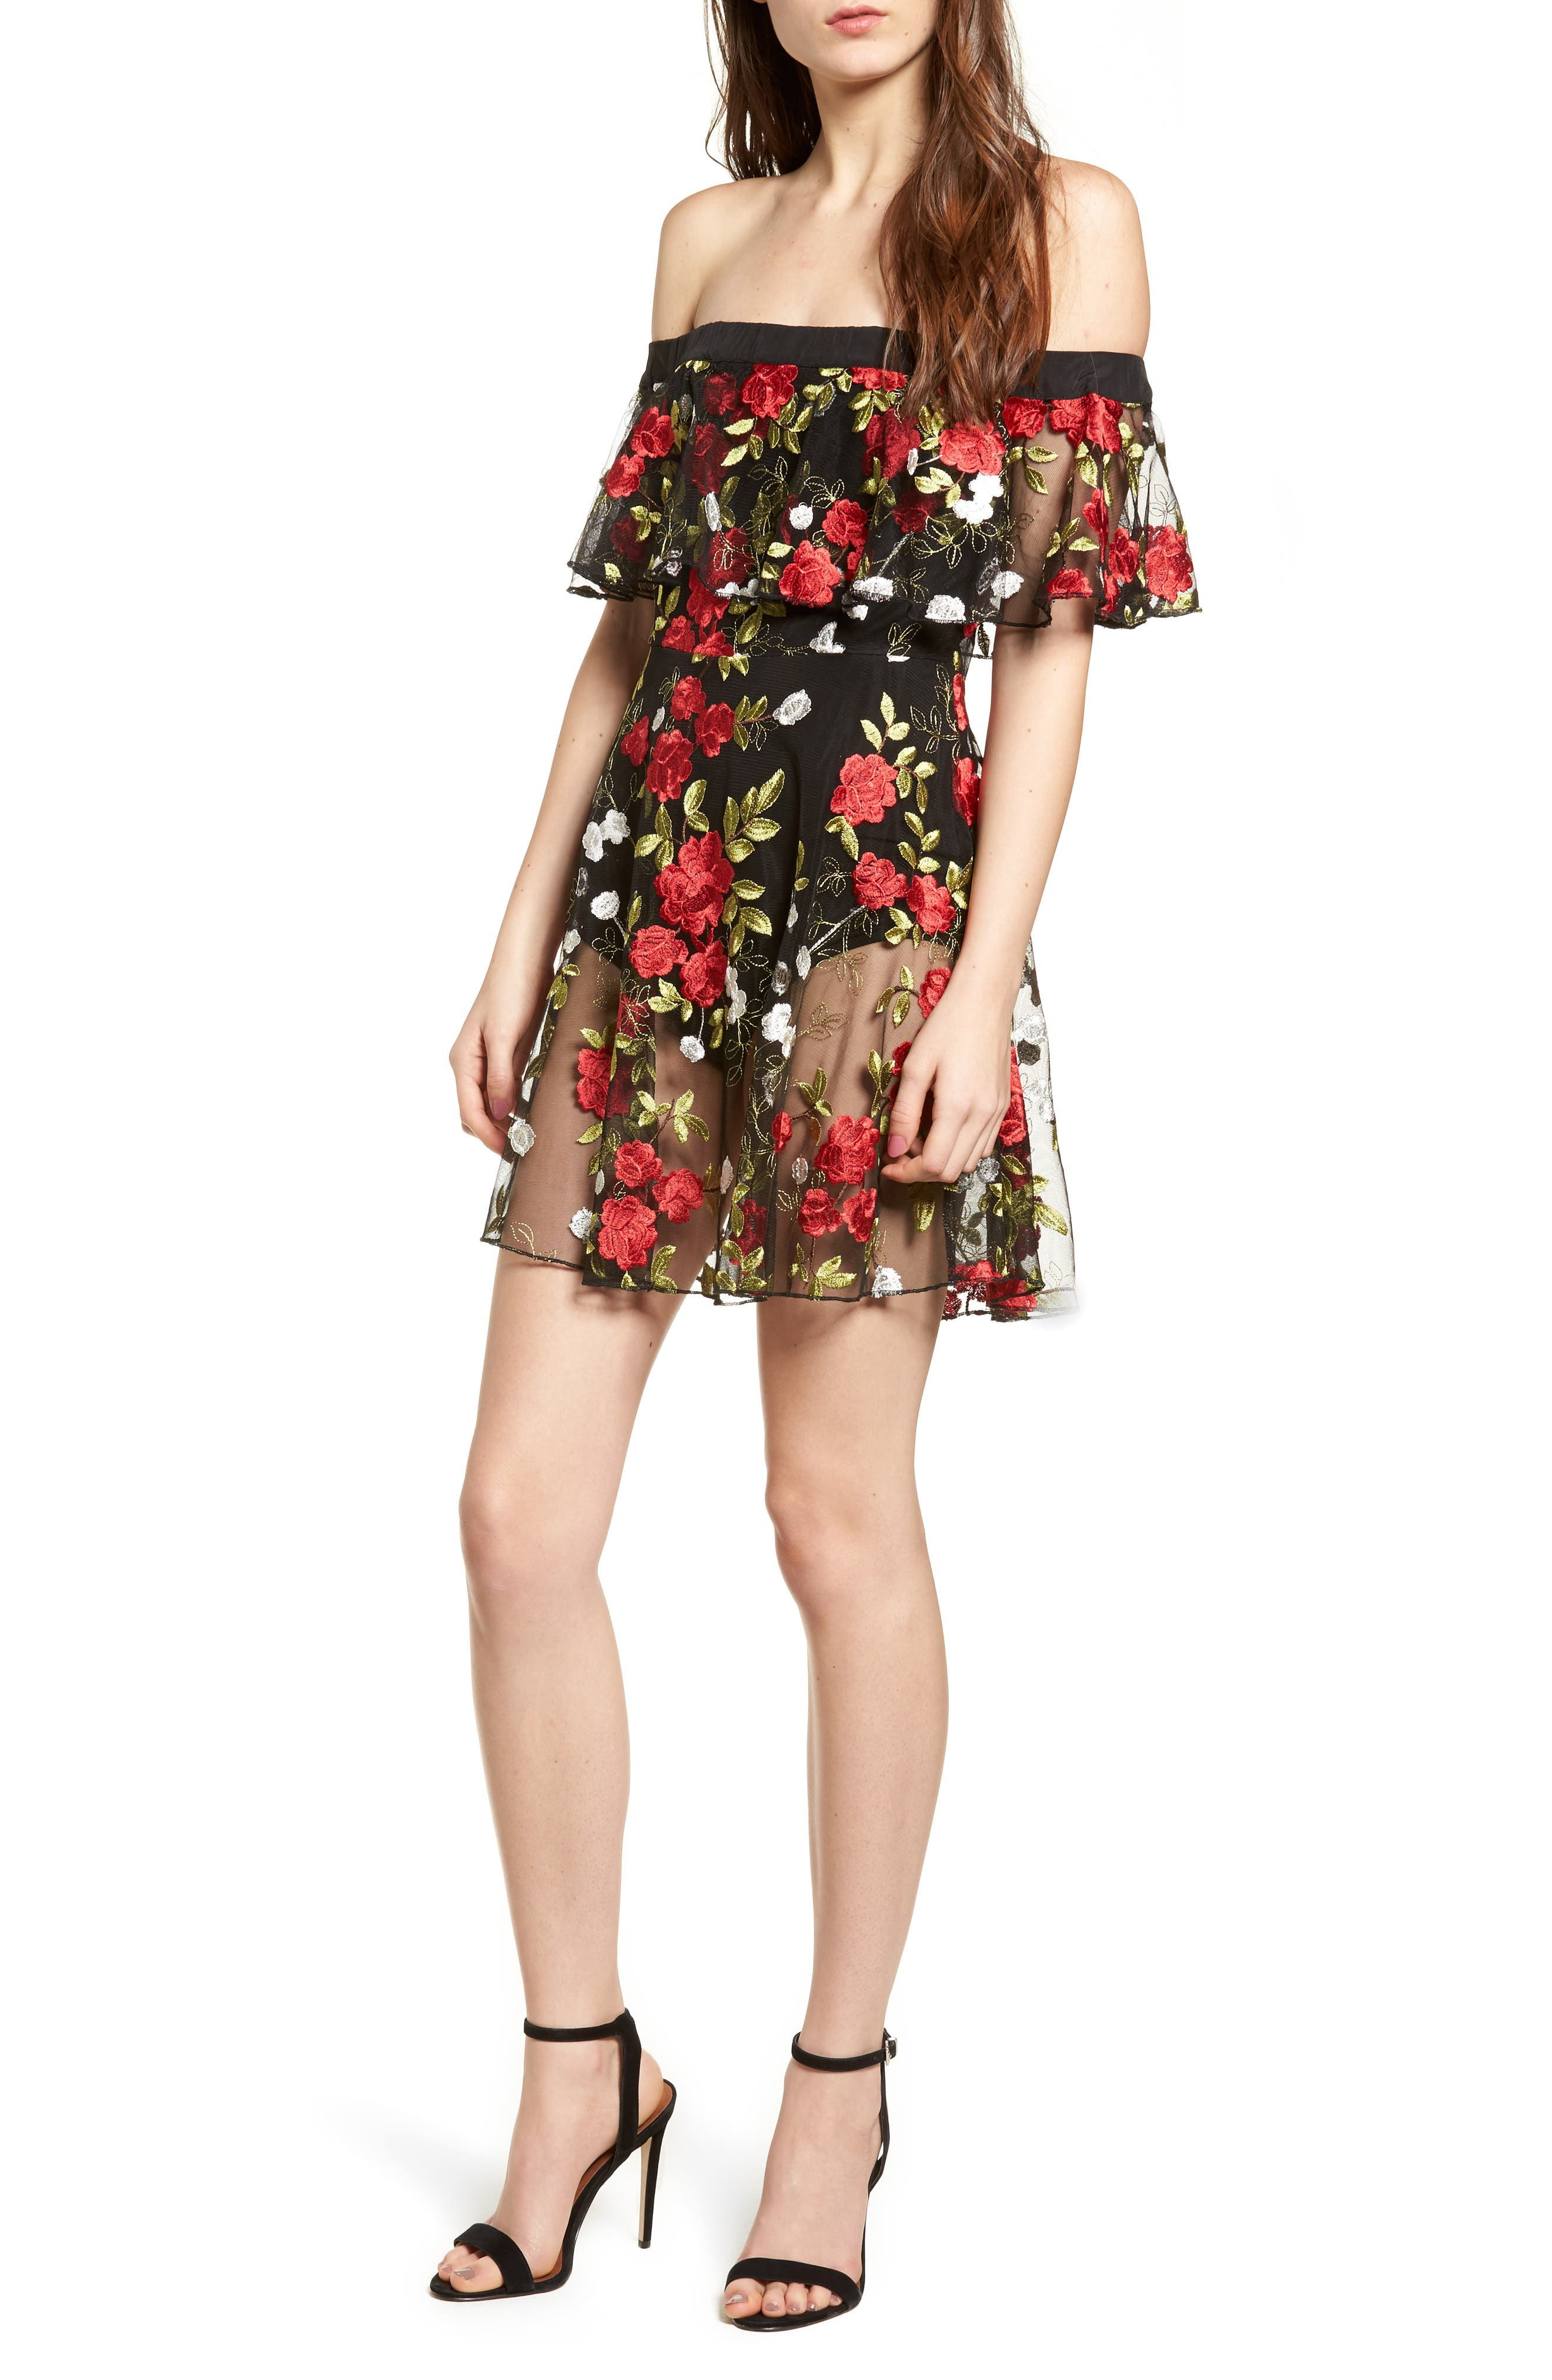 Alternate Image 1 Selected - Lovers + Friends Erica Sheer Embroidered A-Line Dress